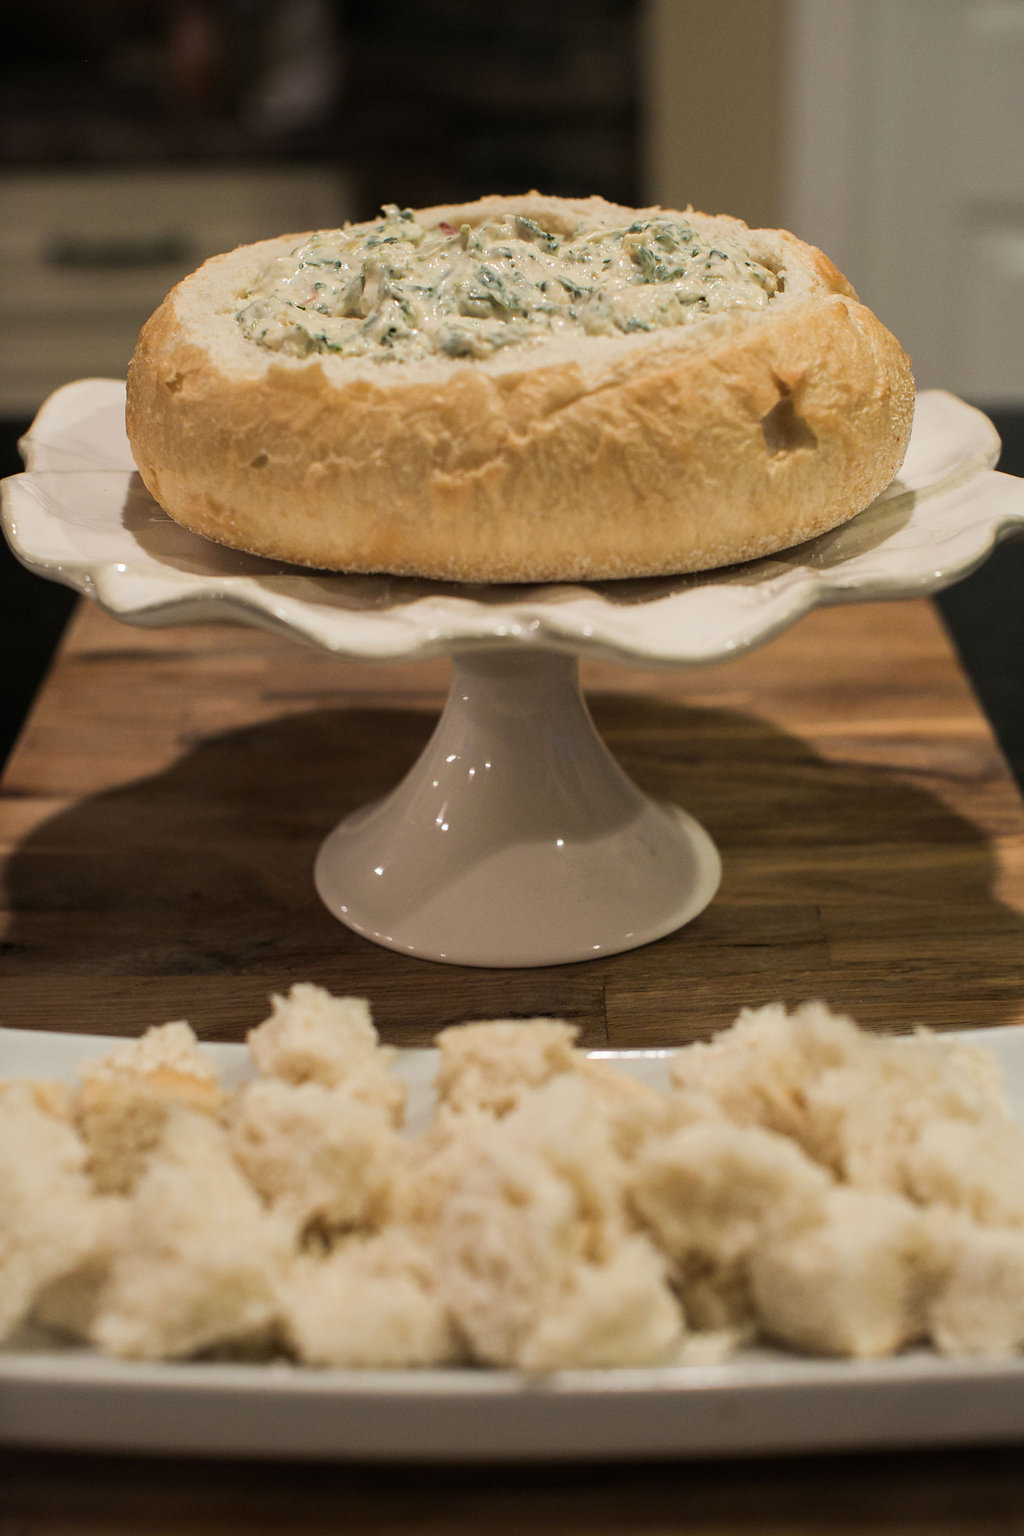 spinach dip recipe these are your days eternal reflections photography making memories